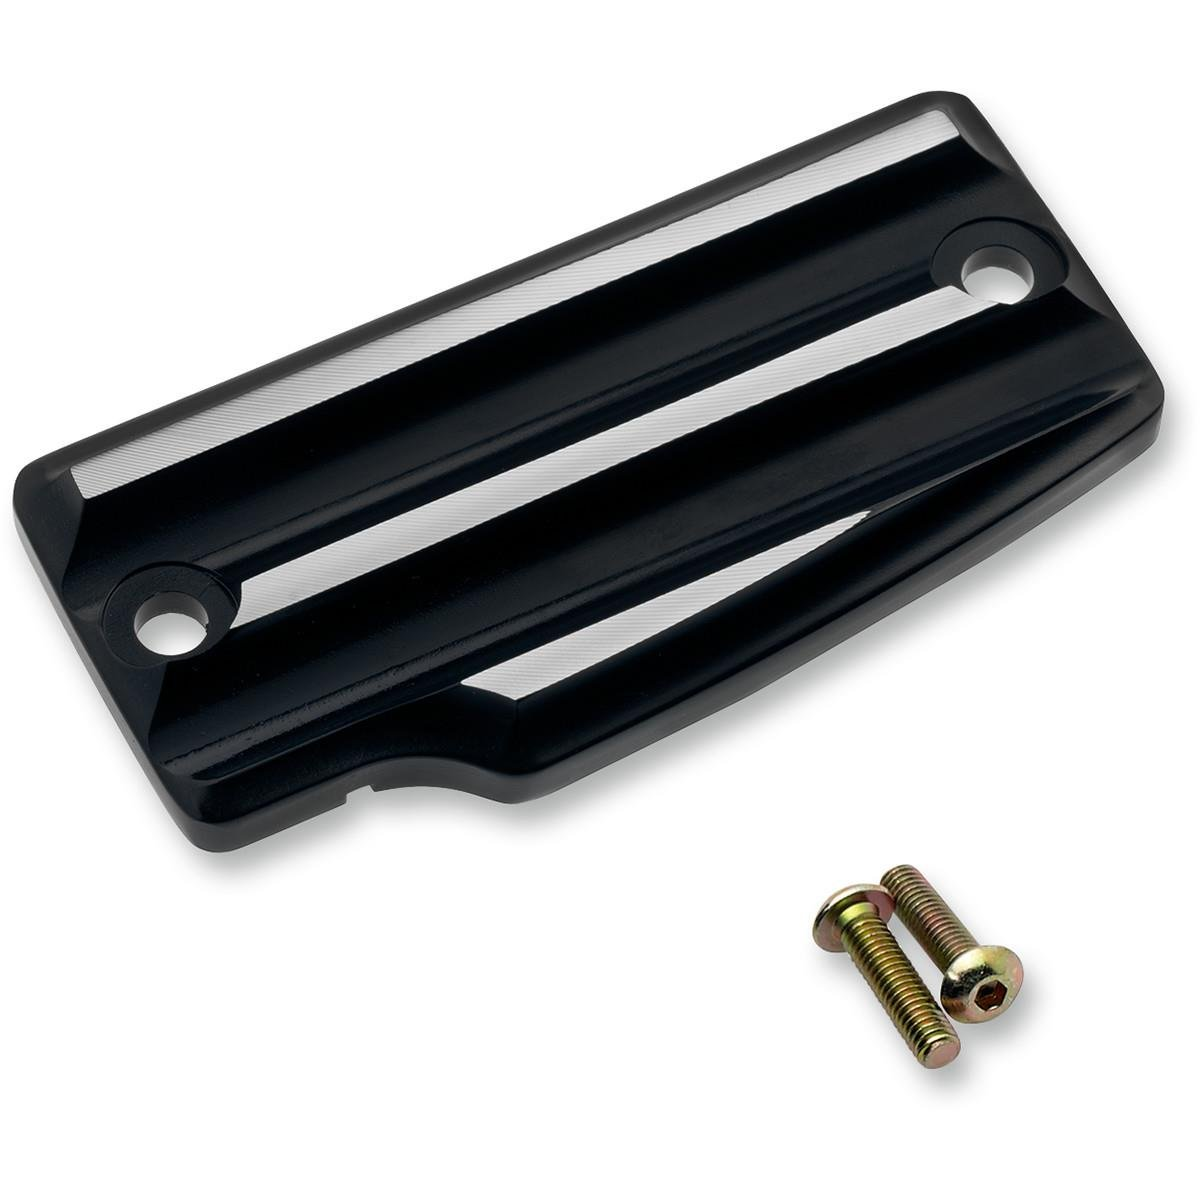 Joker Machine 30-390-2 Rear Master Cylinder Cover - Finned - Black Anodized/Silver by Joker Machine